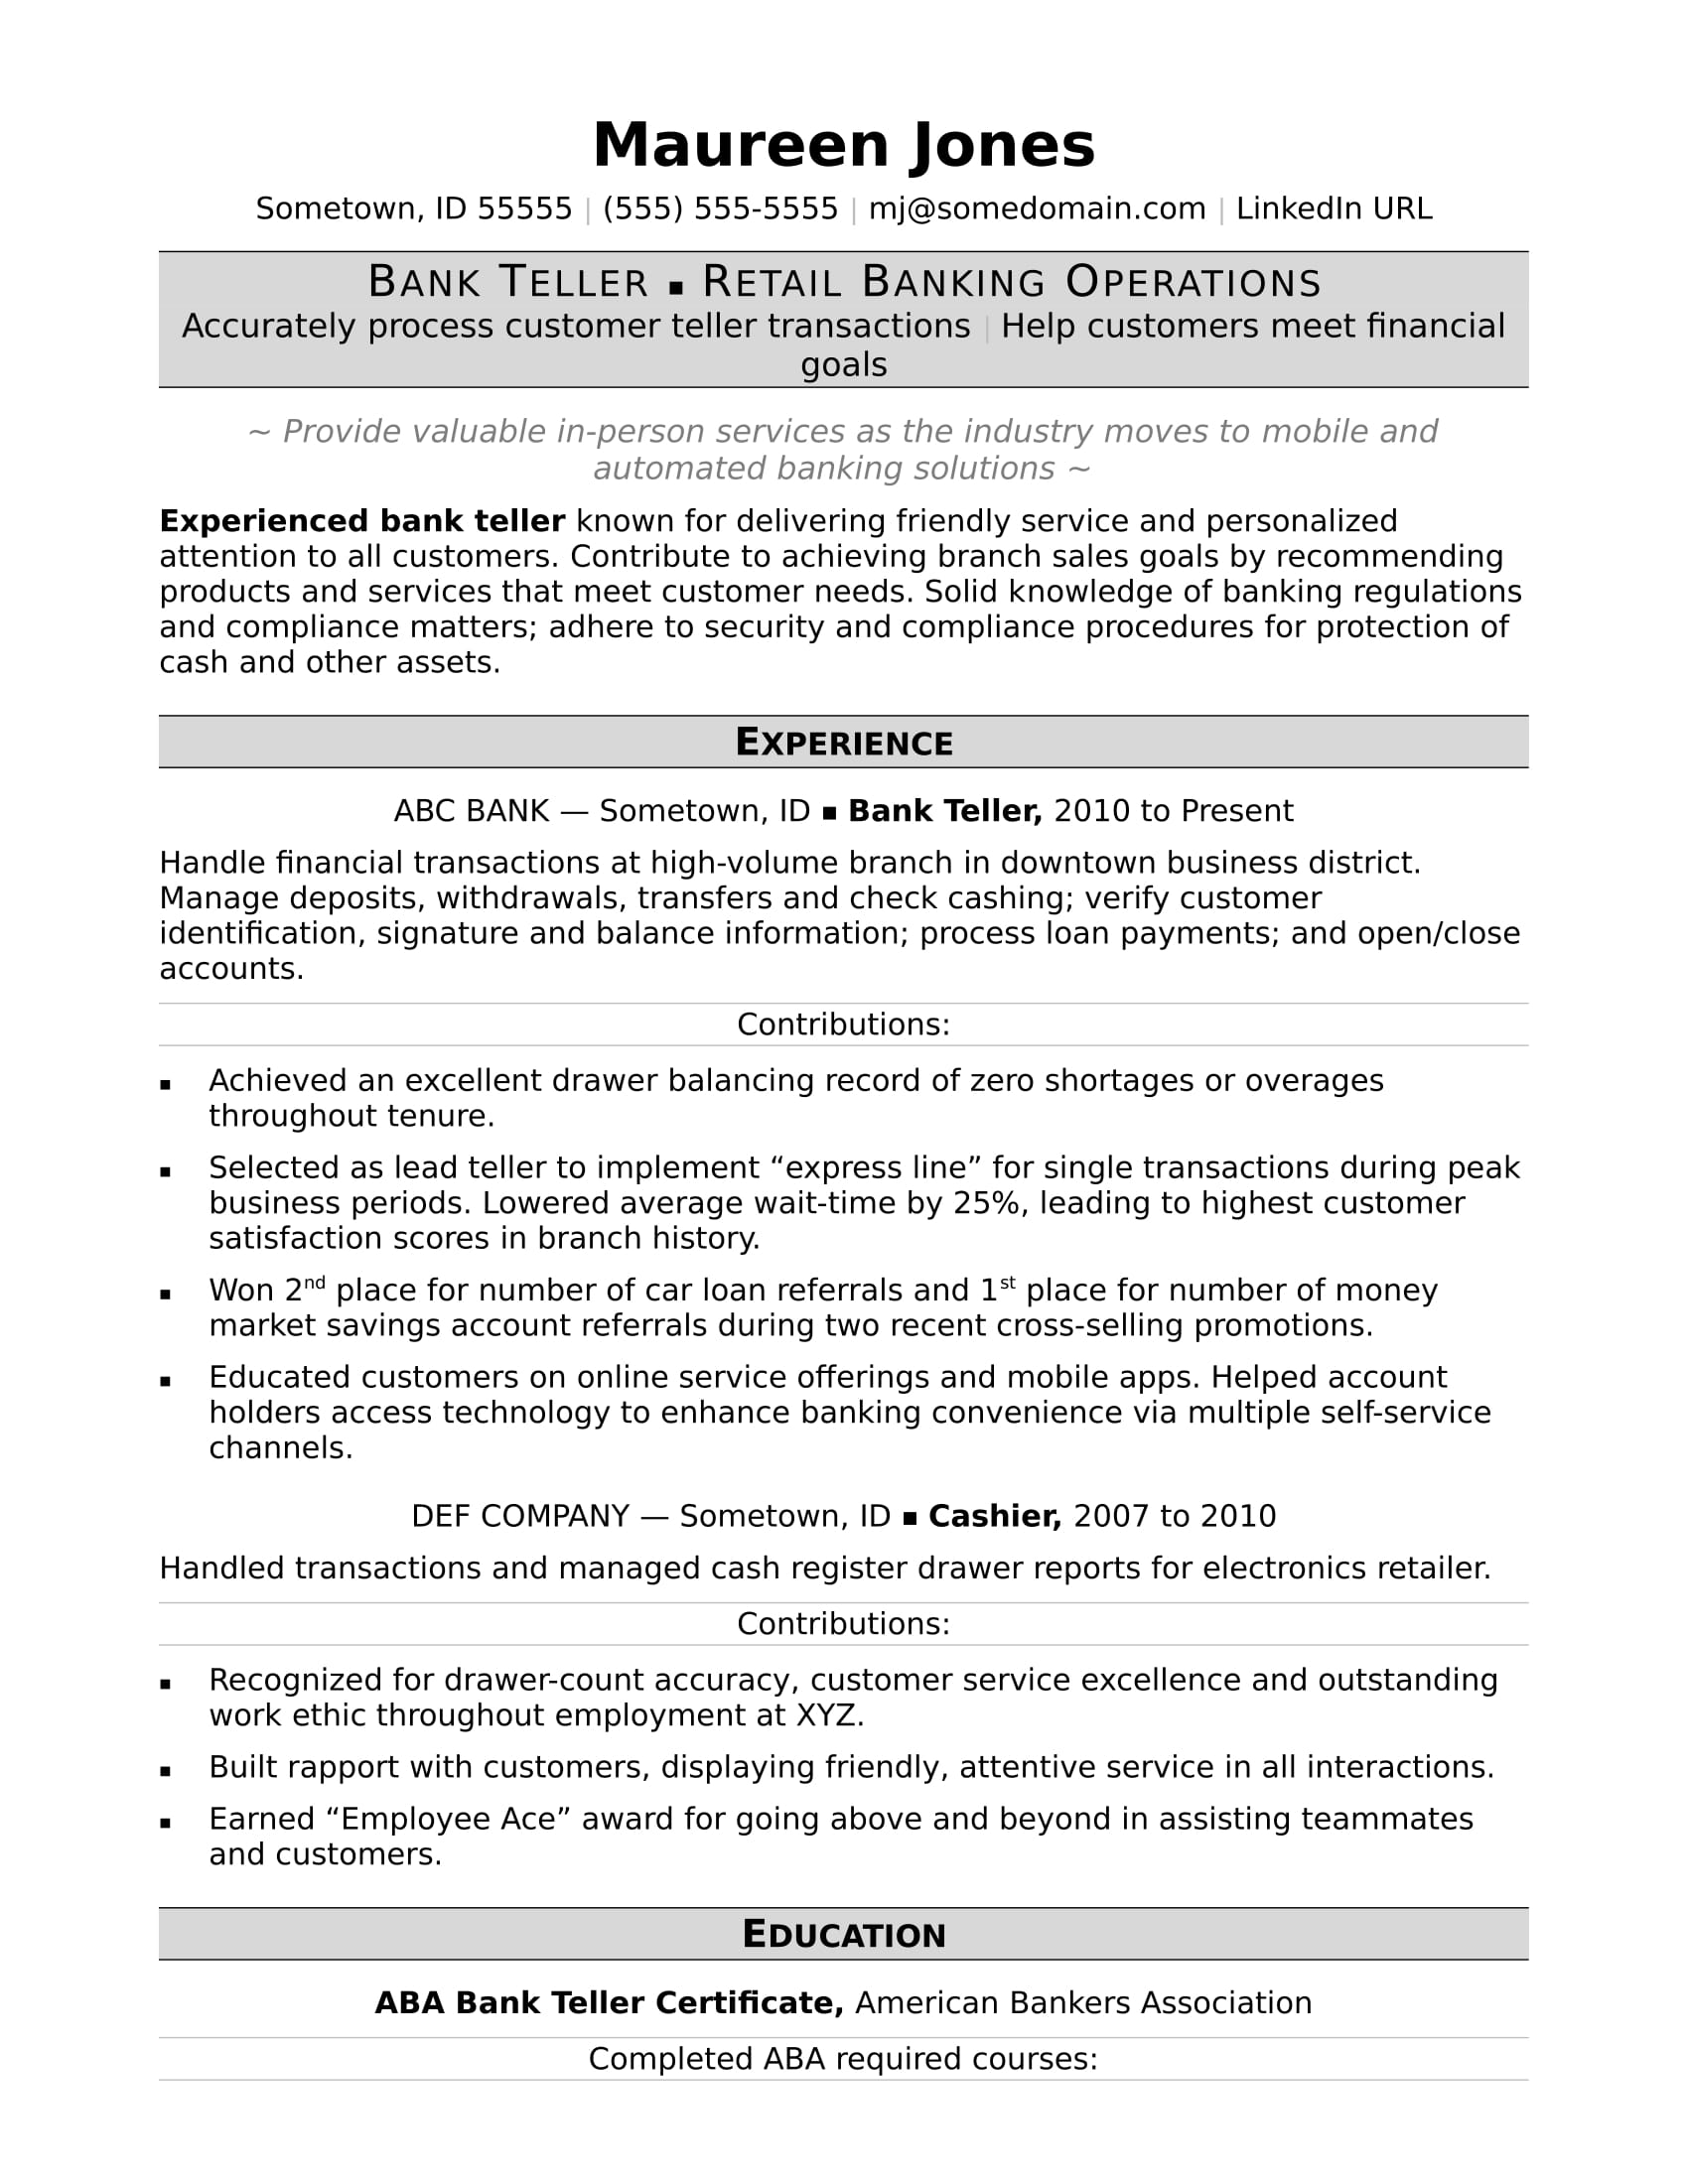 Bank Teller Resume Sample  Bank Teller Skills Resume